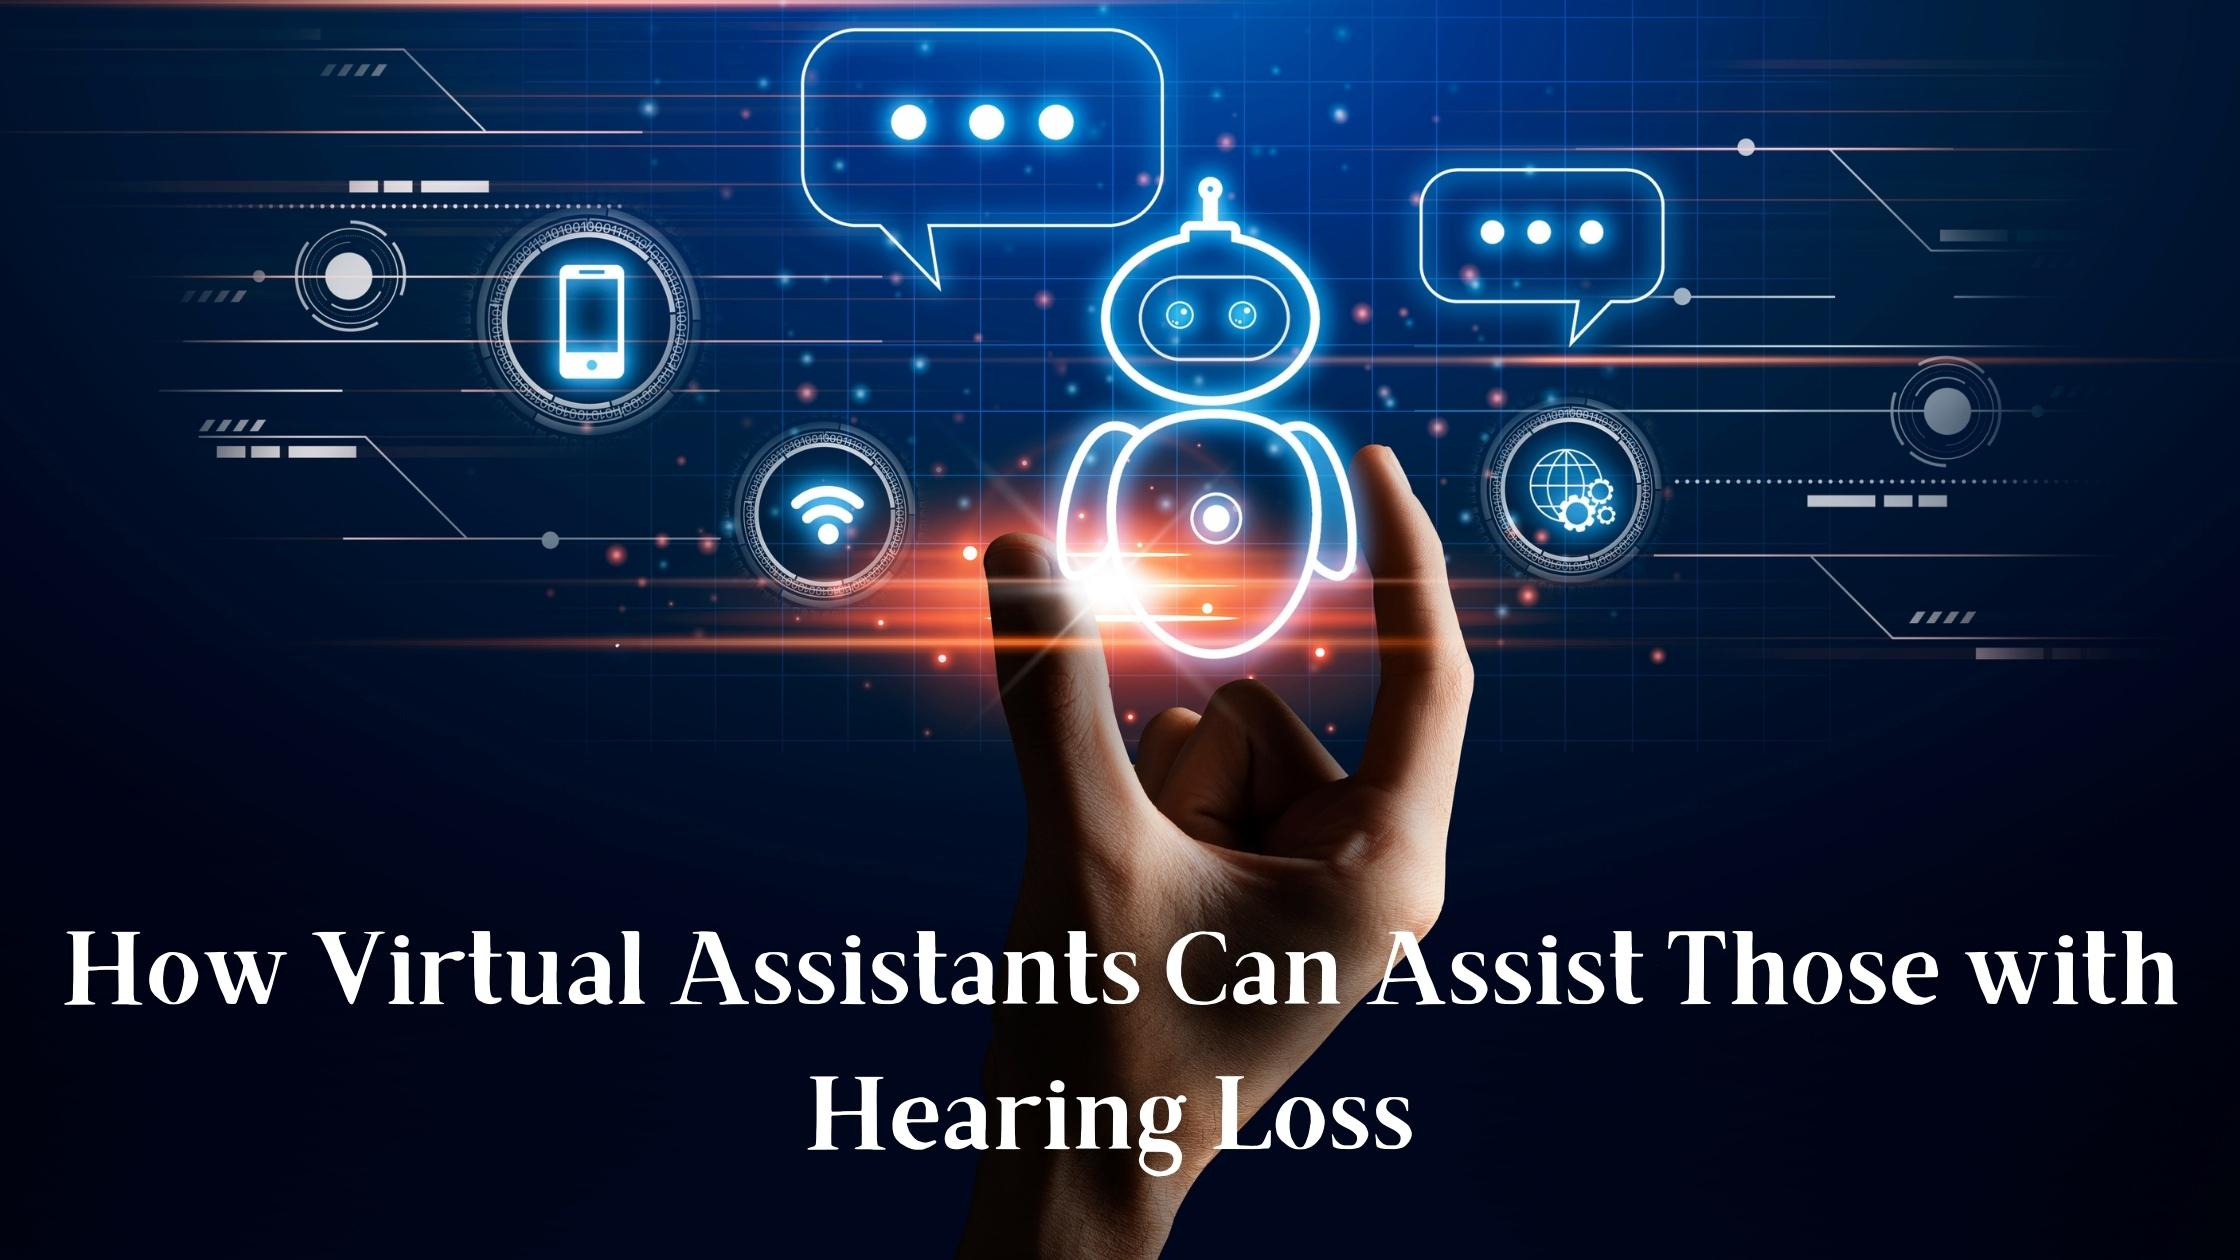 How Virtual Assistants Can Assist Those with Hearing Loss